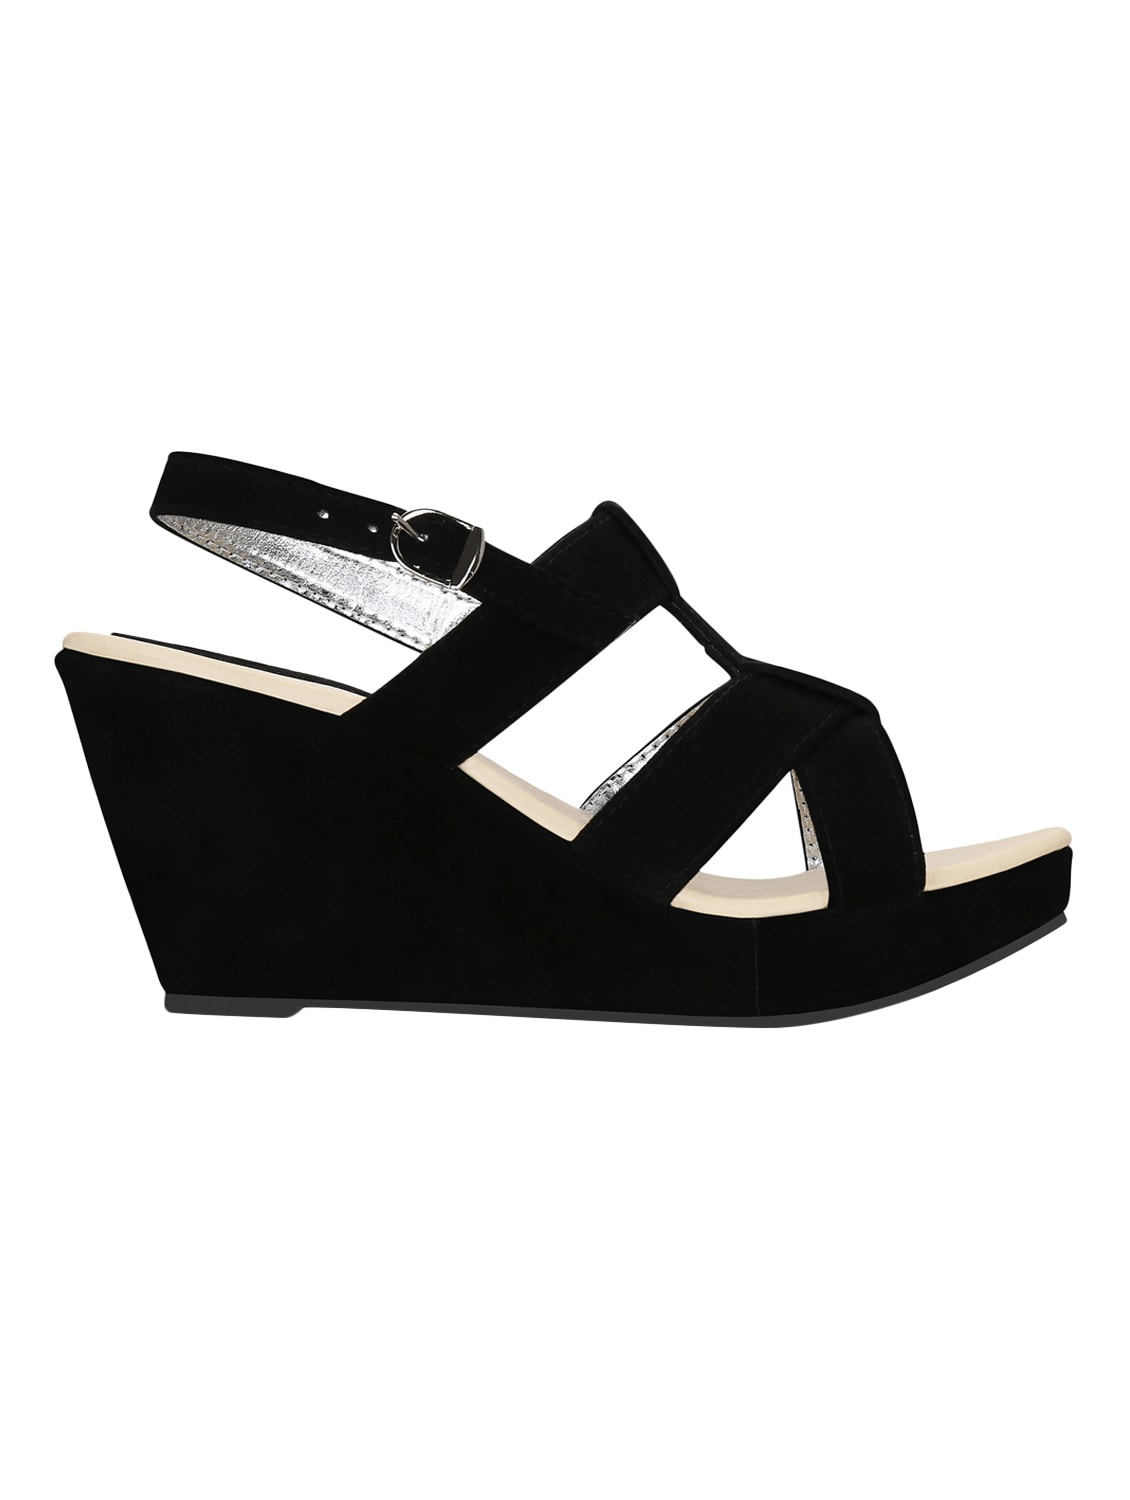 3f5f09460 Buy Kielz-black-wedge-sandals for Women from Kielz for ₹796 at 47% off